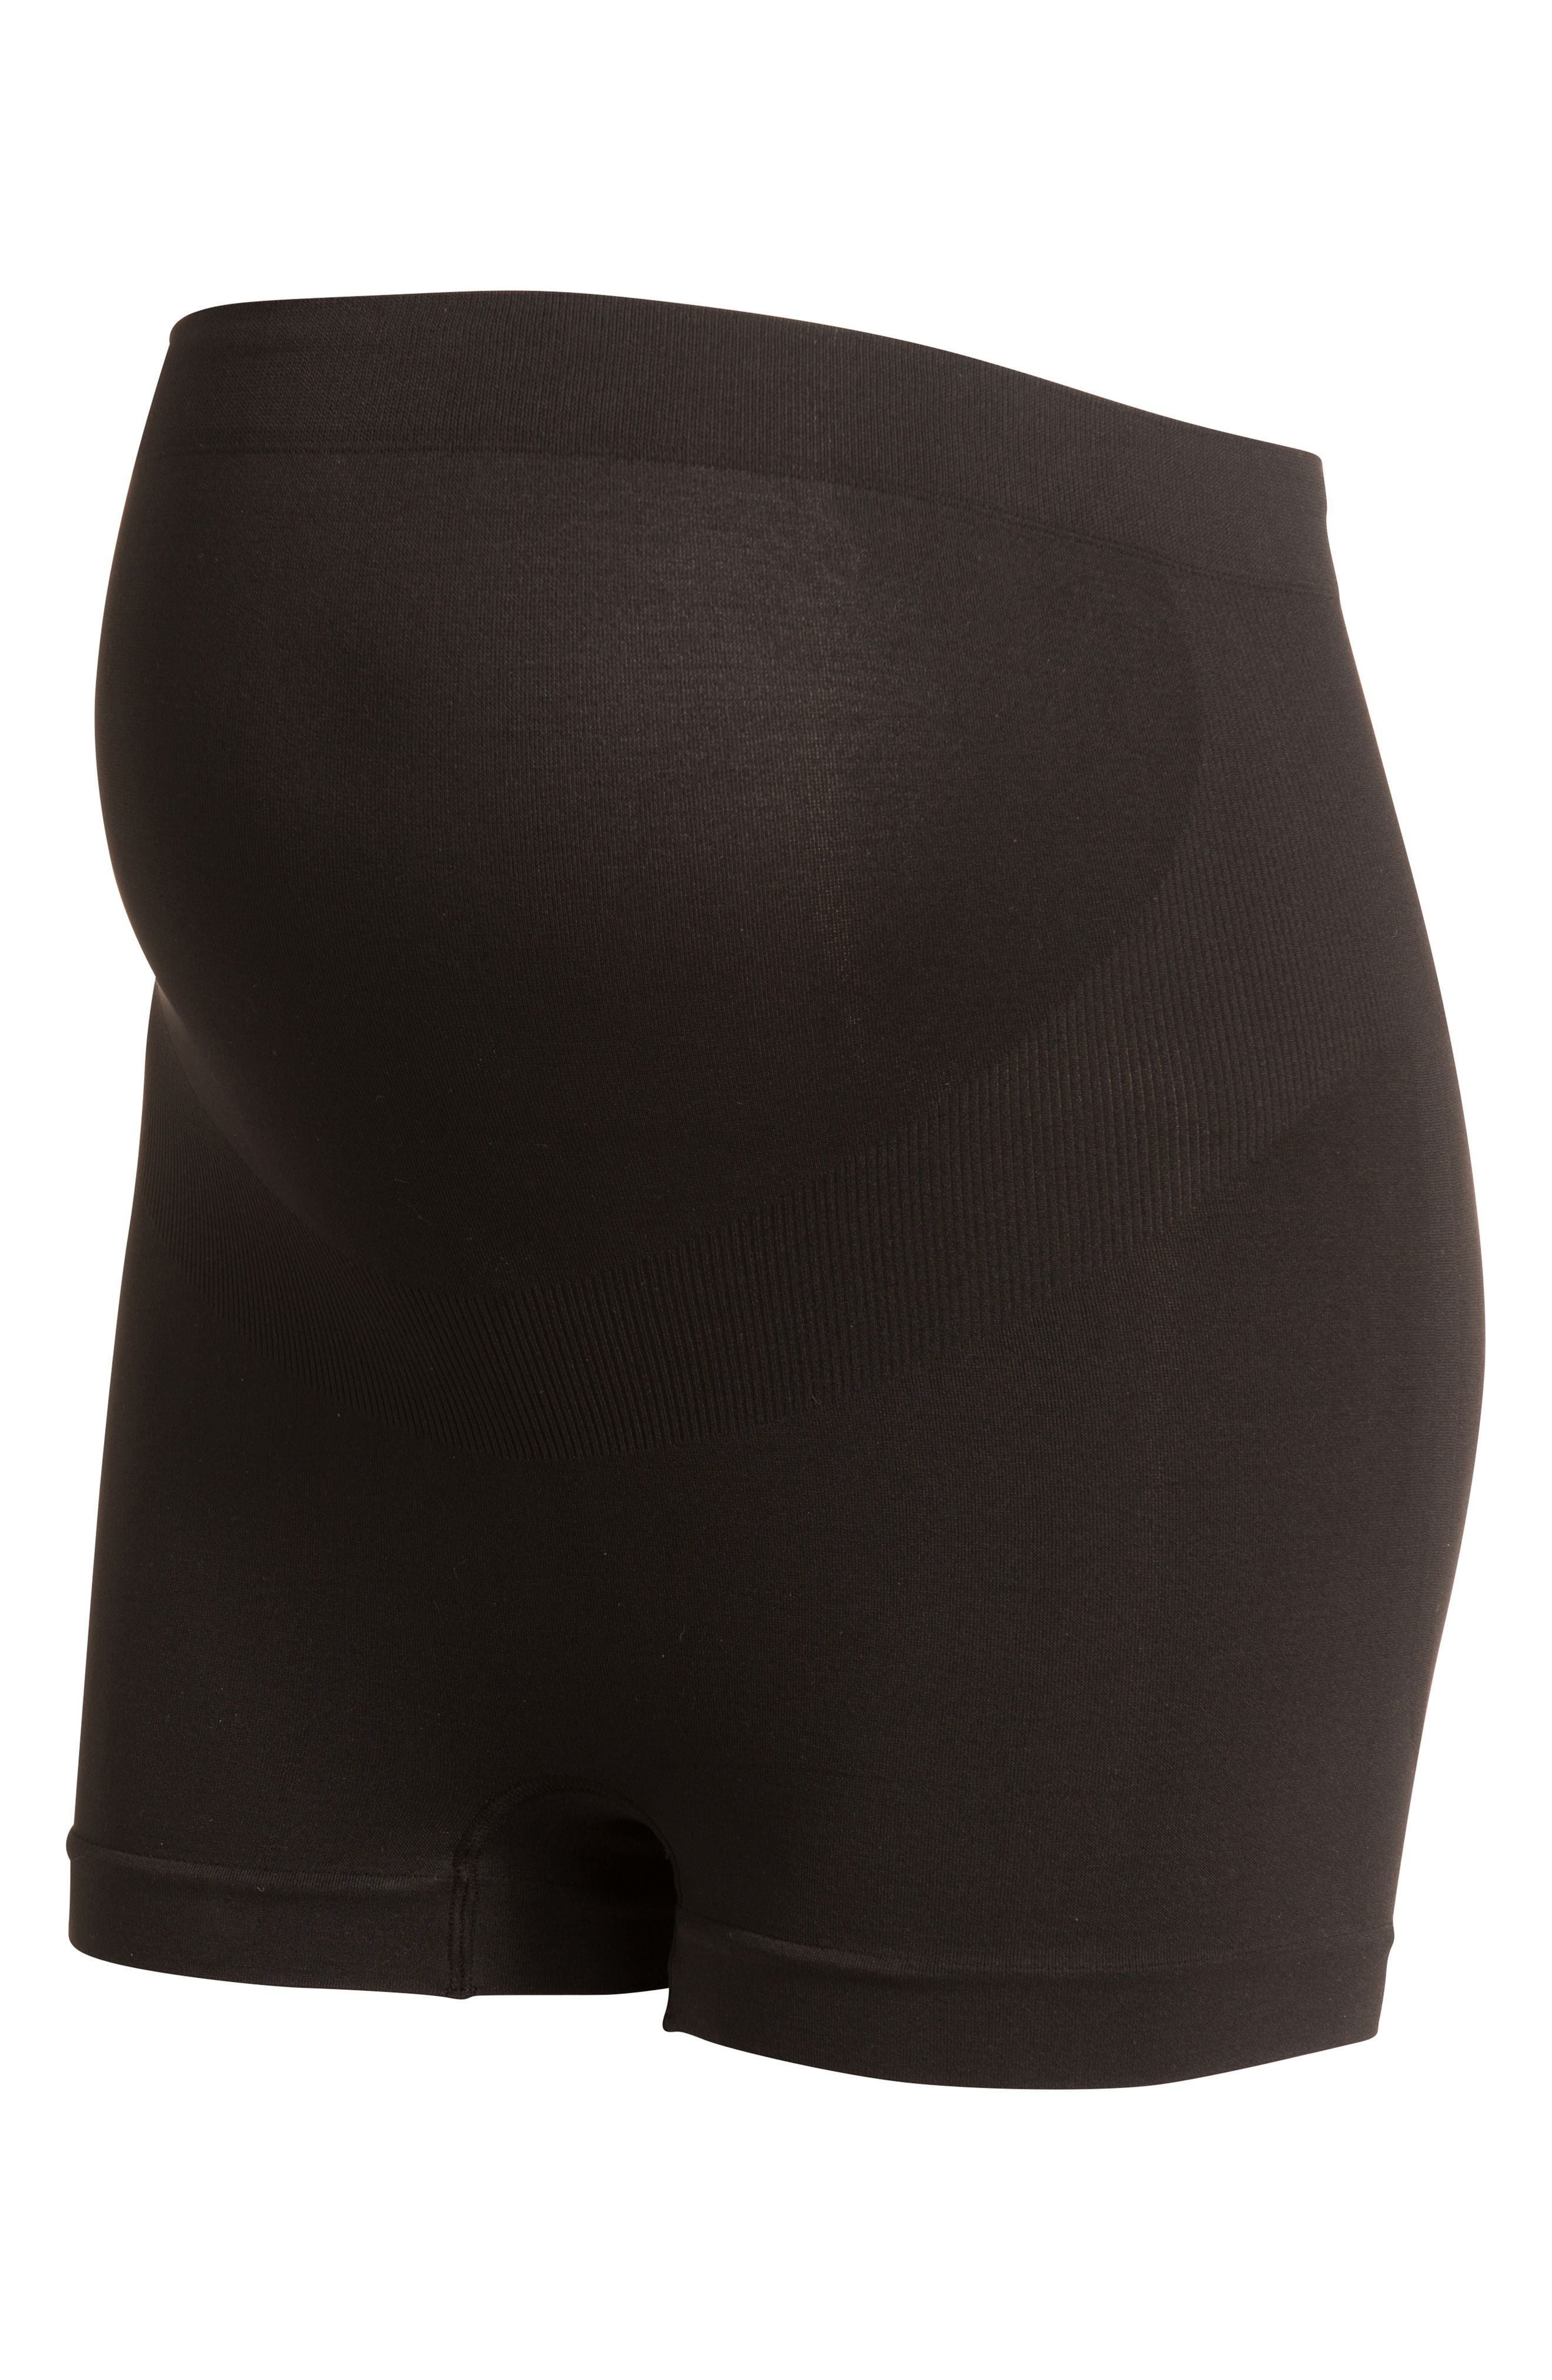 Alternate Image 2  - Noppies Seamless Maternity Shorts